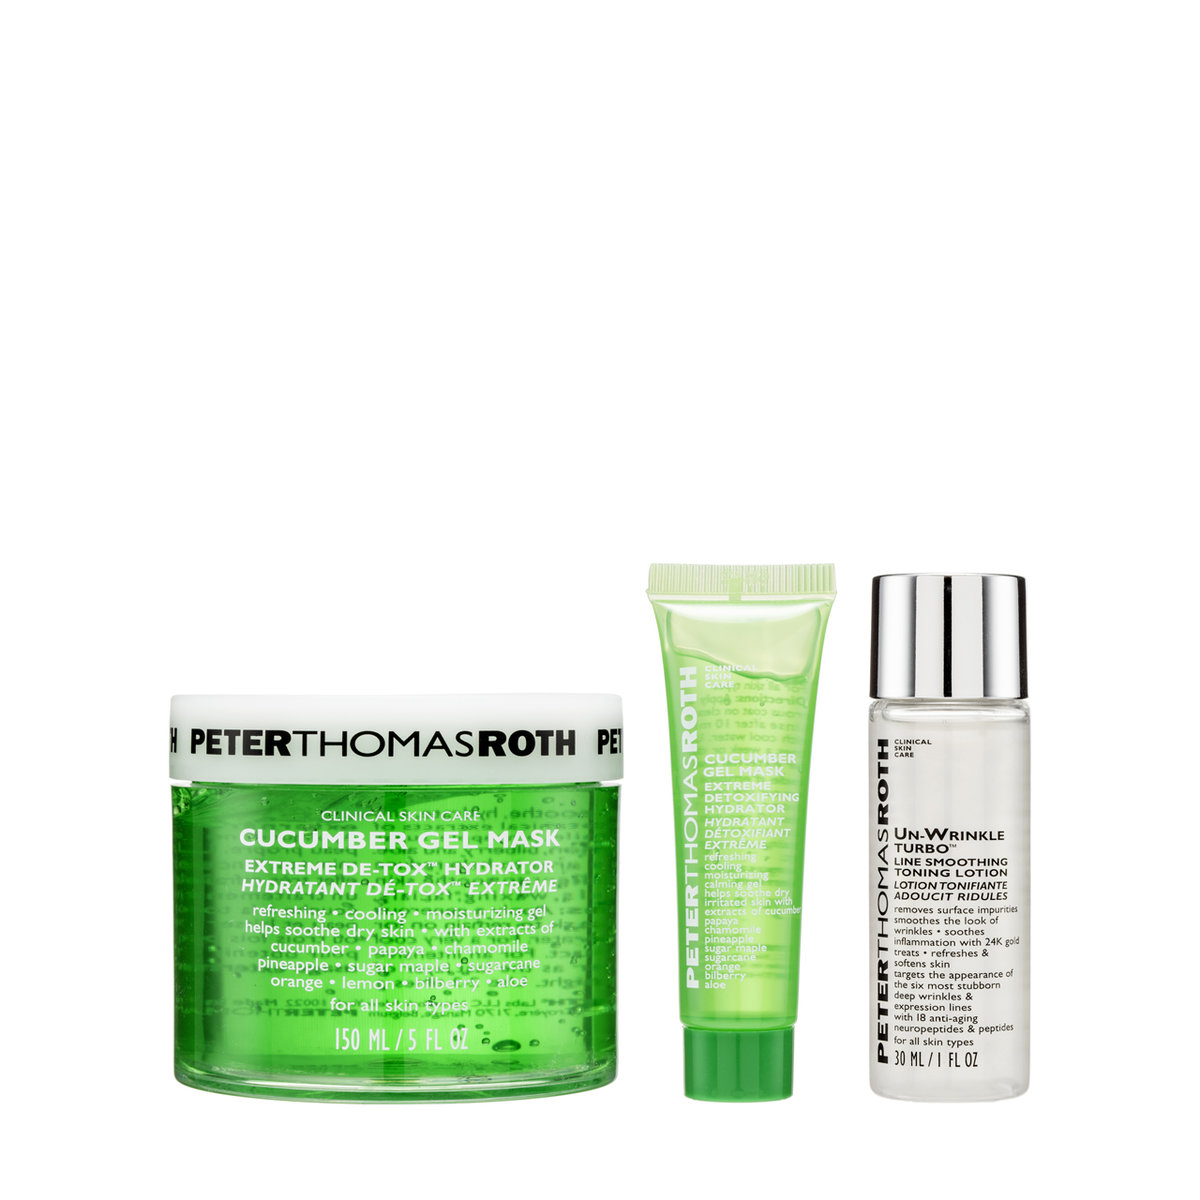 Cucumber Gel Mask set (3pcs) (Expiry Date: May 2020)